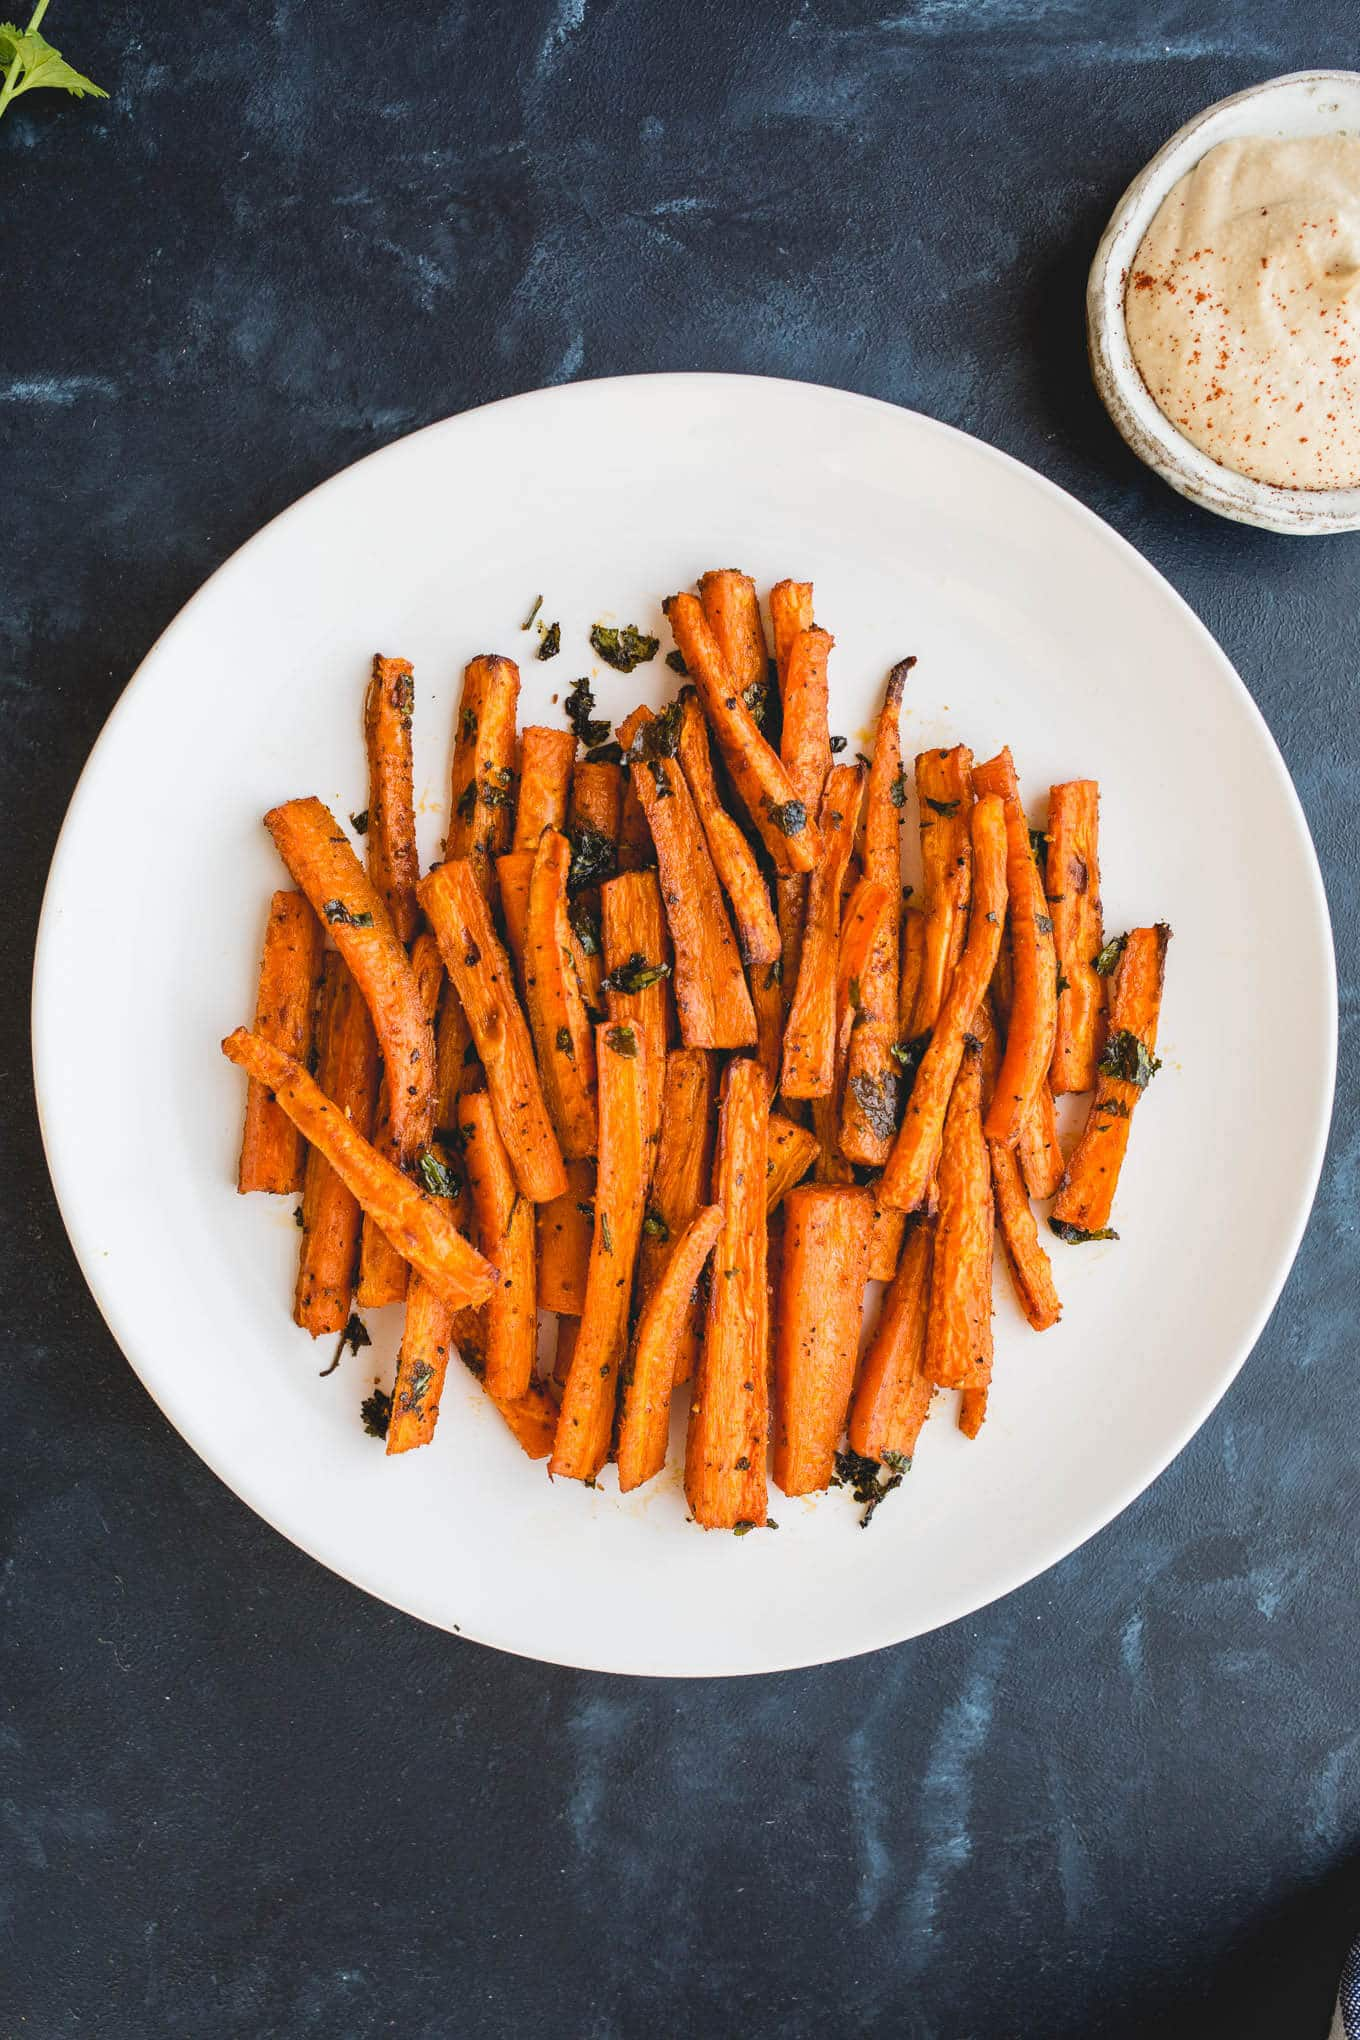 Oven Baked Carrot Fries tossed with olive oil, paprika, garlic powder, salt, pepper, and parsley, for a deliciously healthy snack recipe. Gluten-free, vegan.